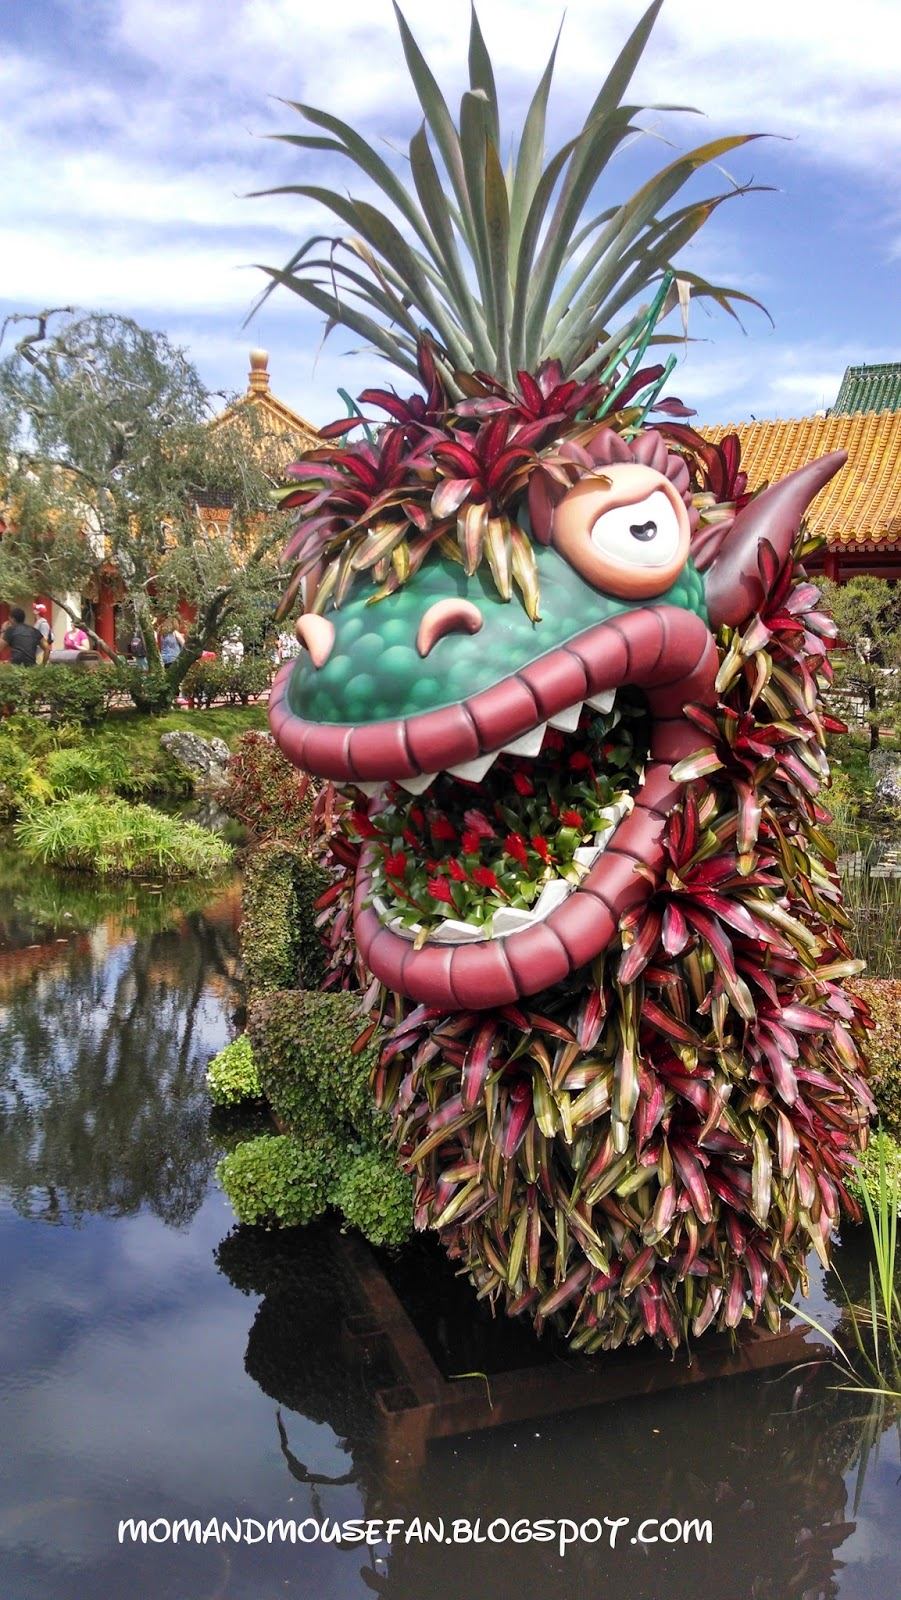 Mom And Mouse Fan 2016 Epcot Flower And Garden Festival Review